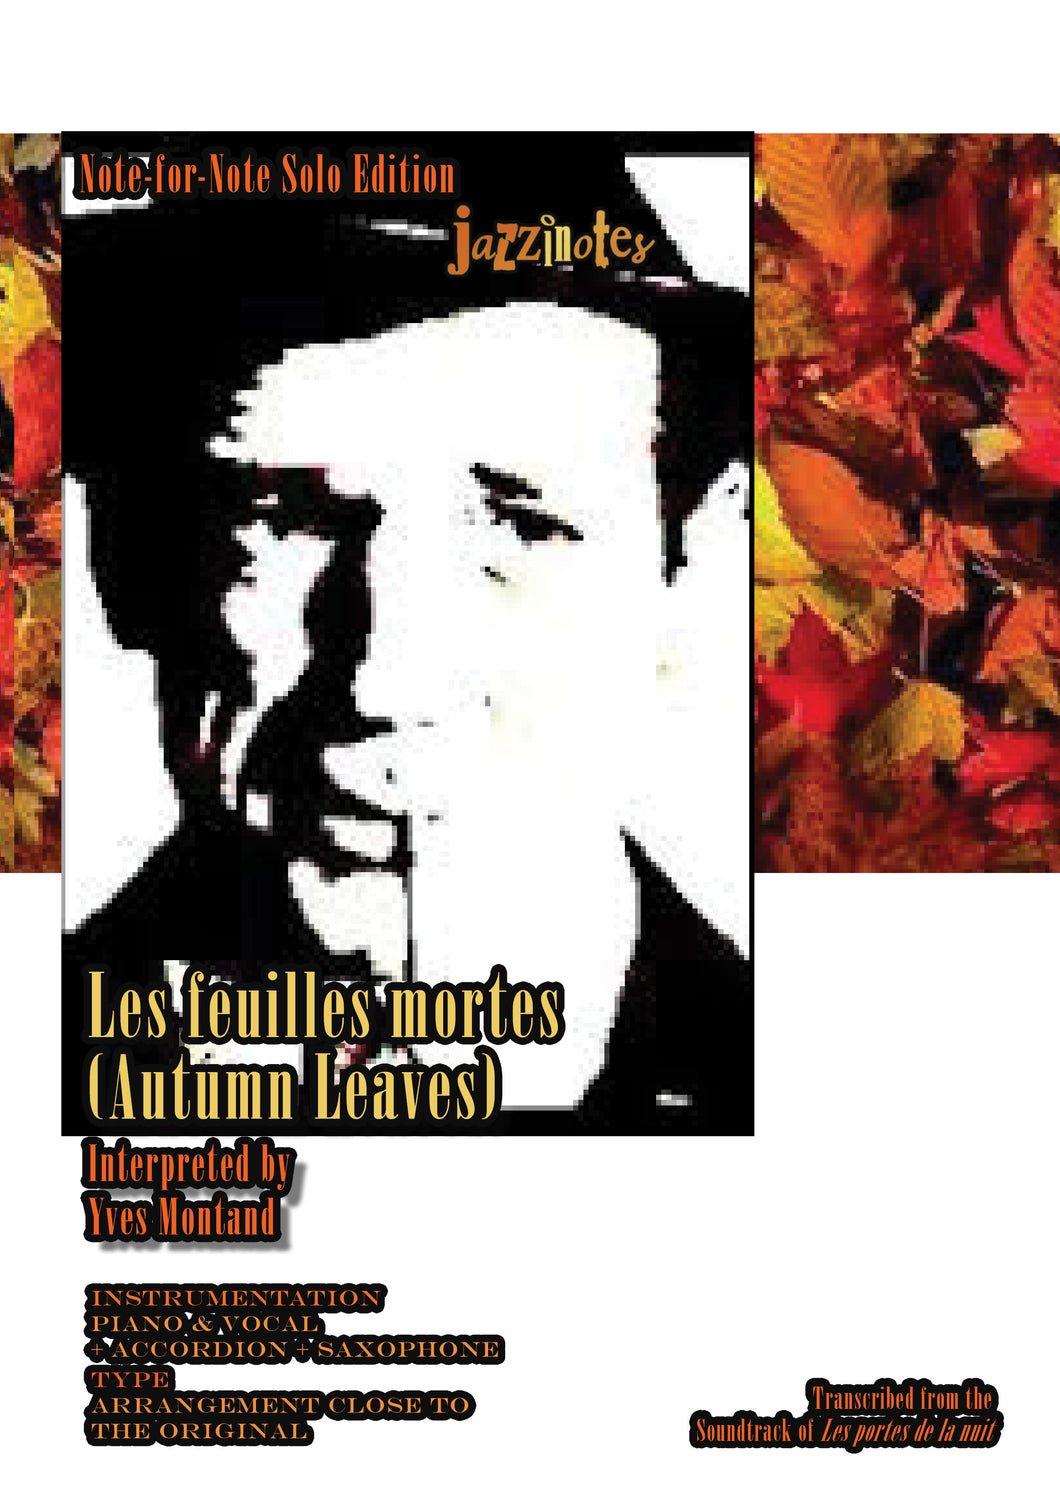 Montand, Yves: Les feuilles mortes (Autumn Leaves) - Musiknoten Download